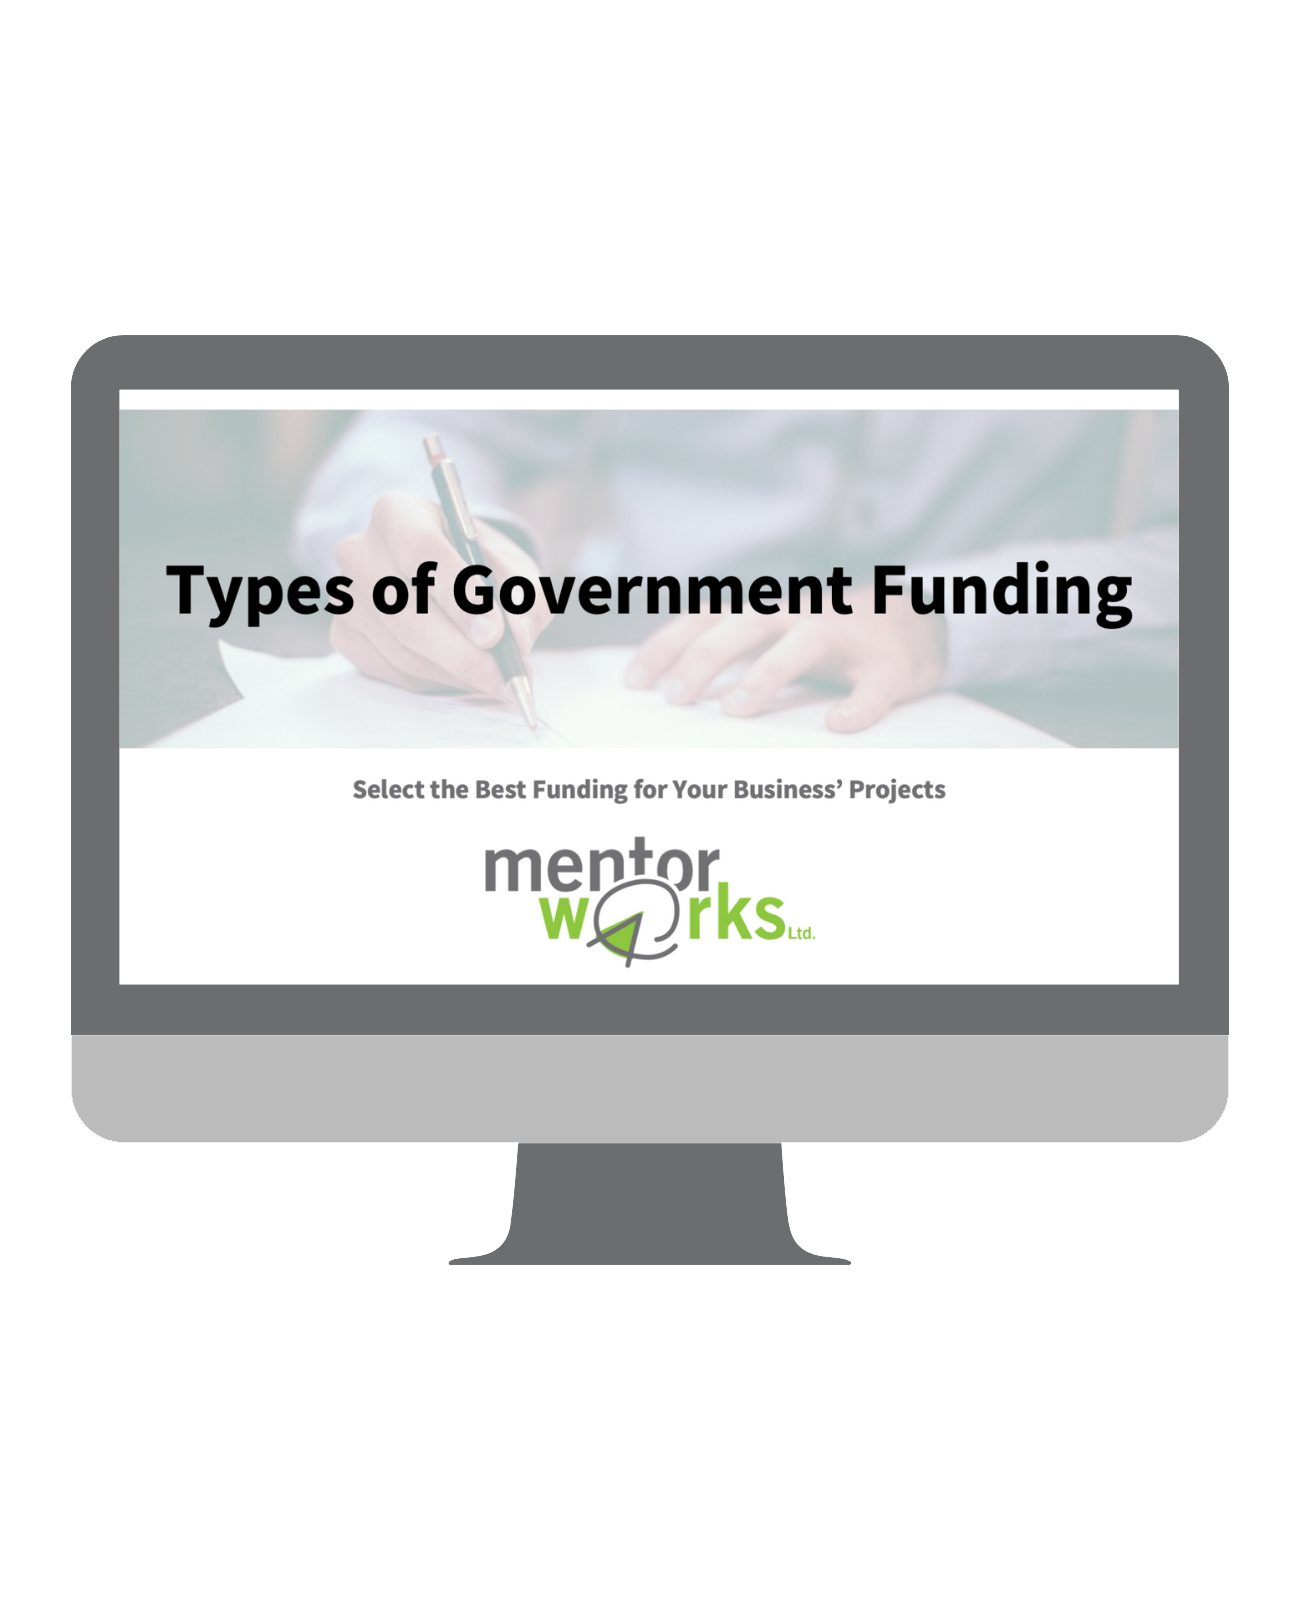 Types of Government Funding